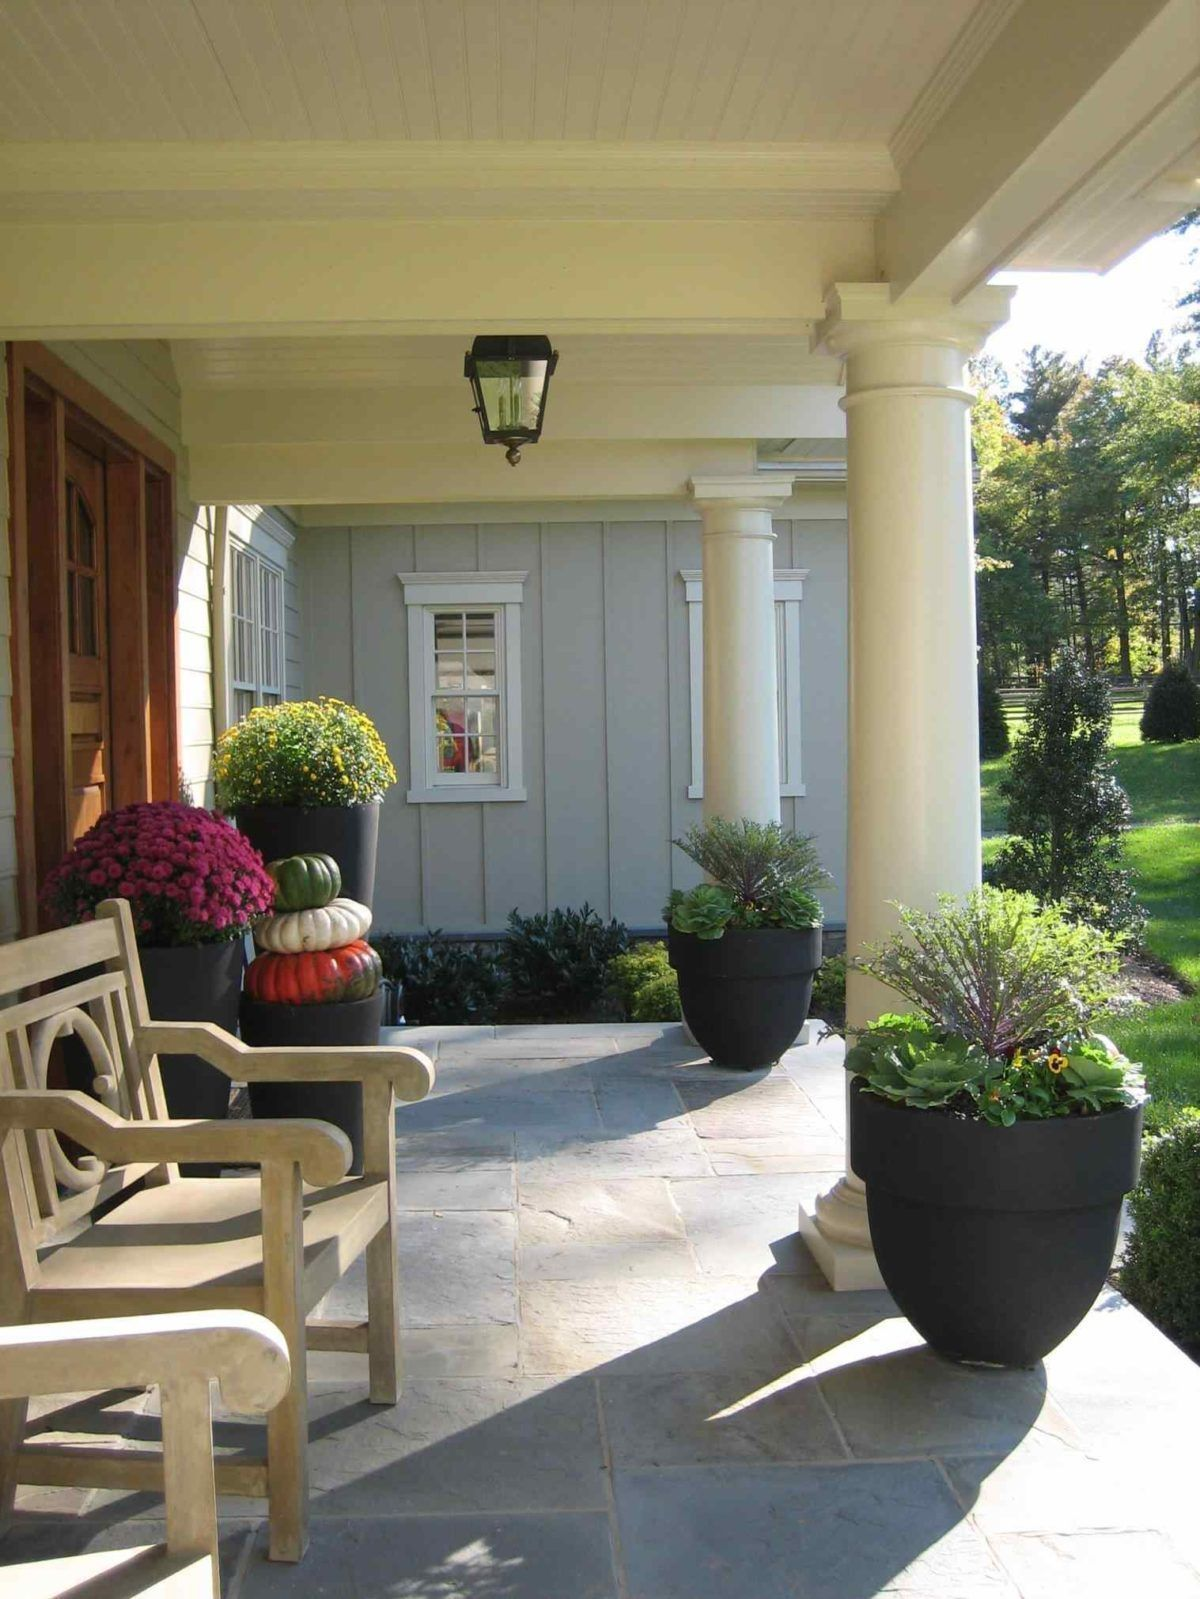 We have eight brilliant front yard landscaping ideas that not just add to the curb appeal of your home, but are easy on the pocket too. [Front Yard Landscaping Simple, Front Yard Design, Landscape Design Ideas] #LandscapeIdeas #FrontYardIdeas #PorchIdeas